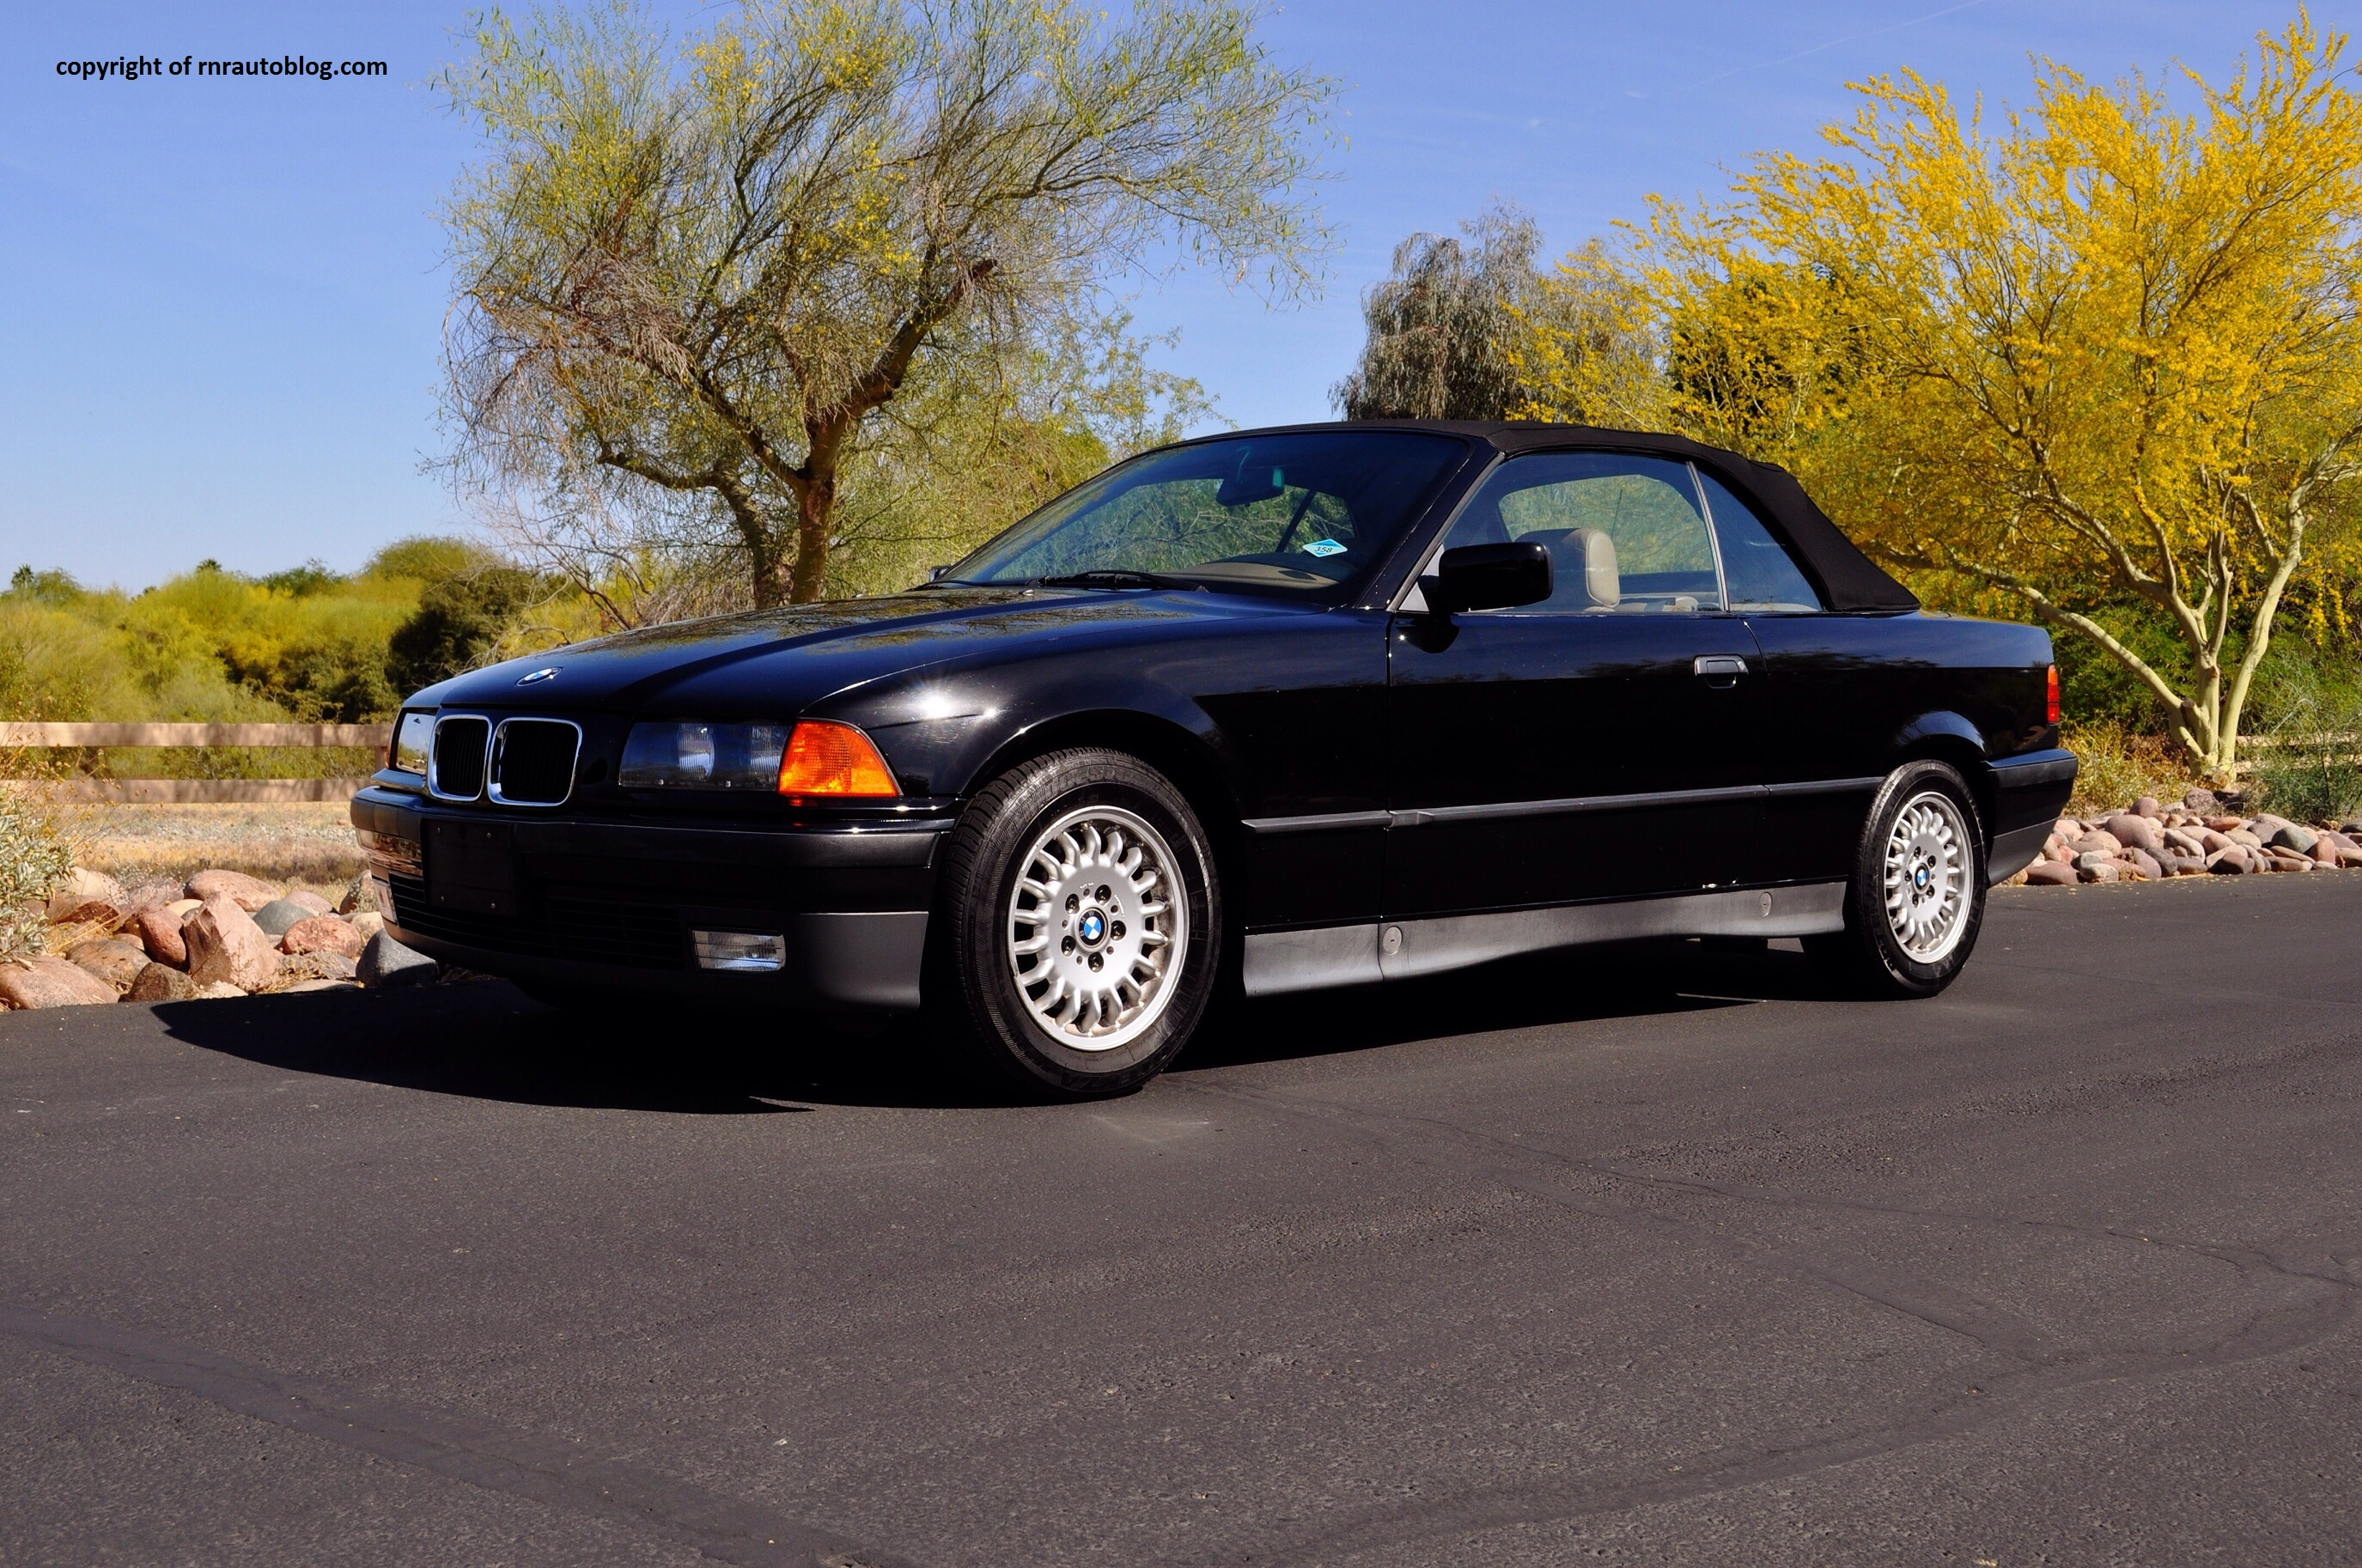 BMW I Convertible Review RNR Automotive Blog - 325i bmw convertible